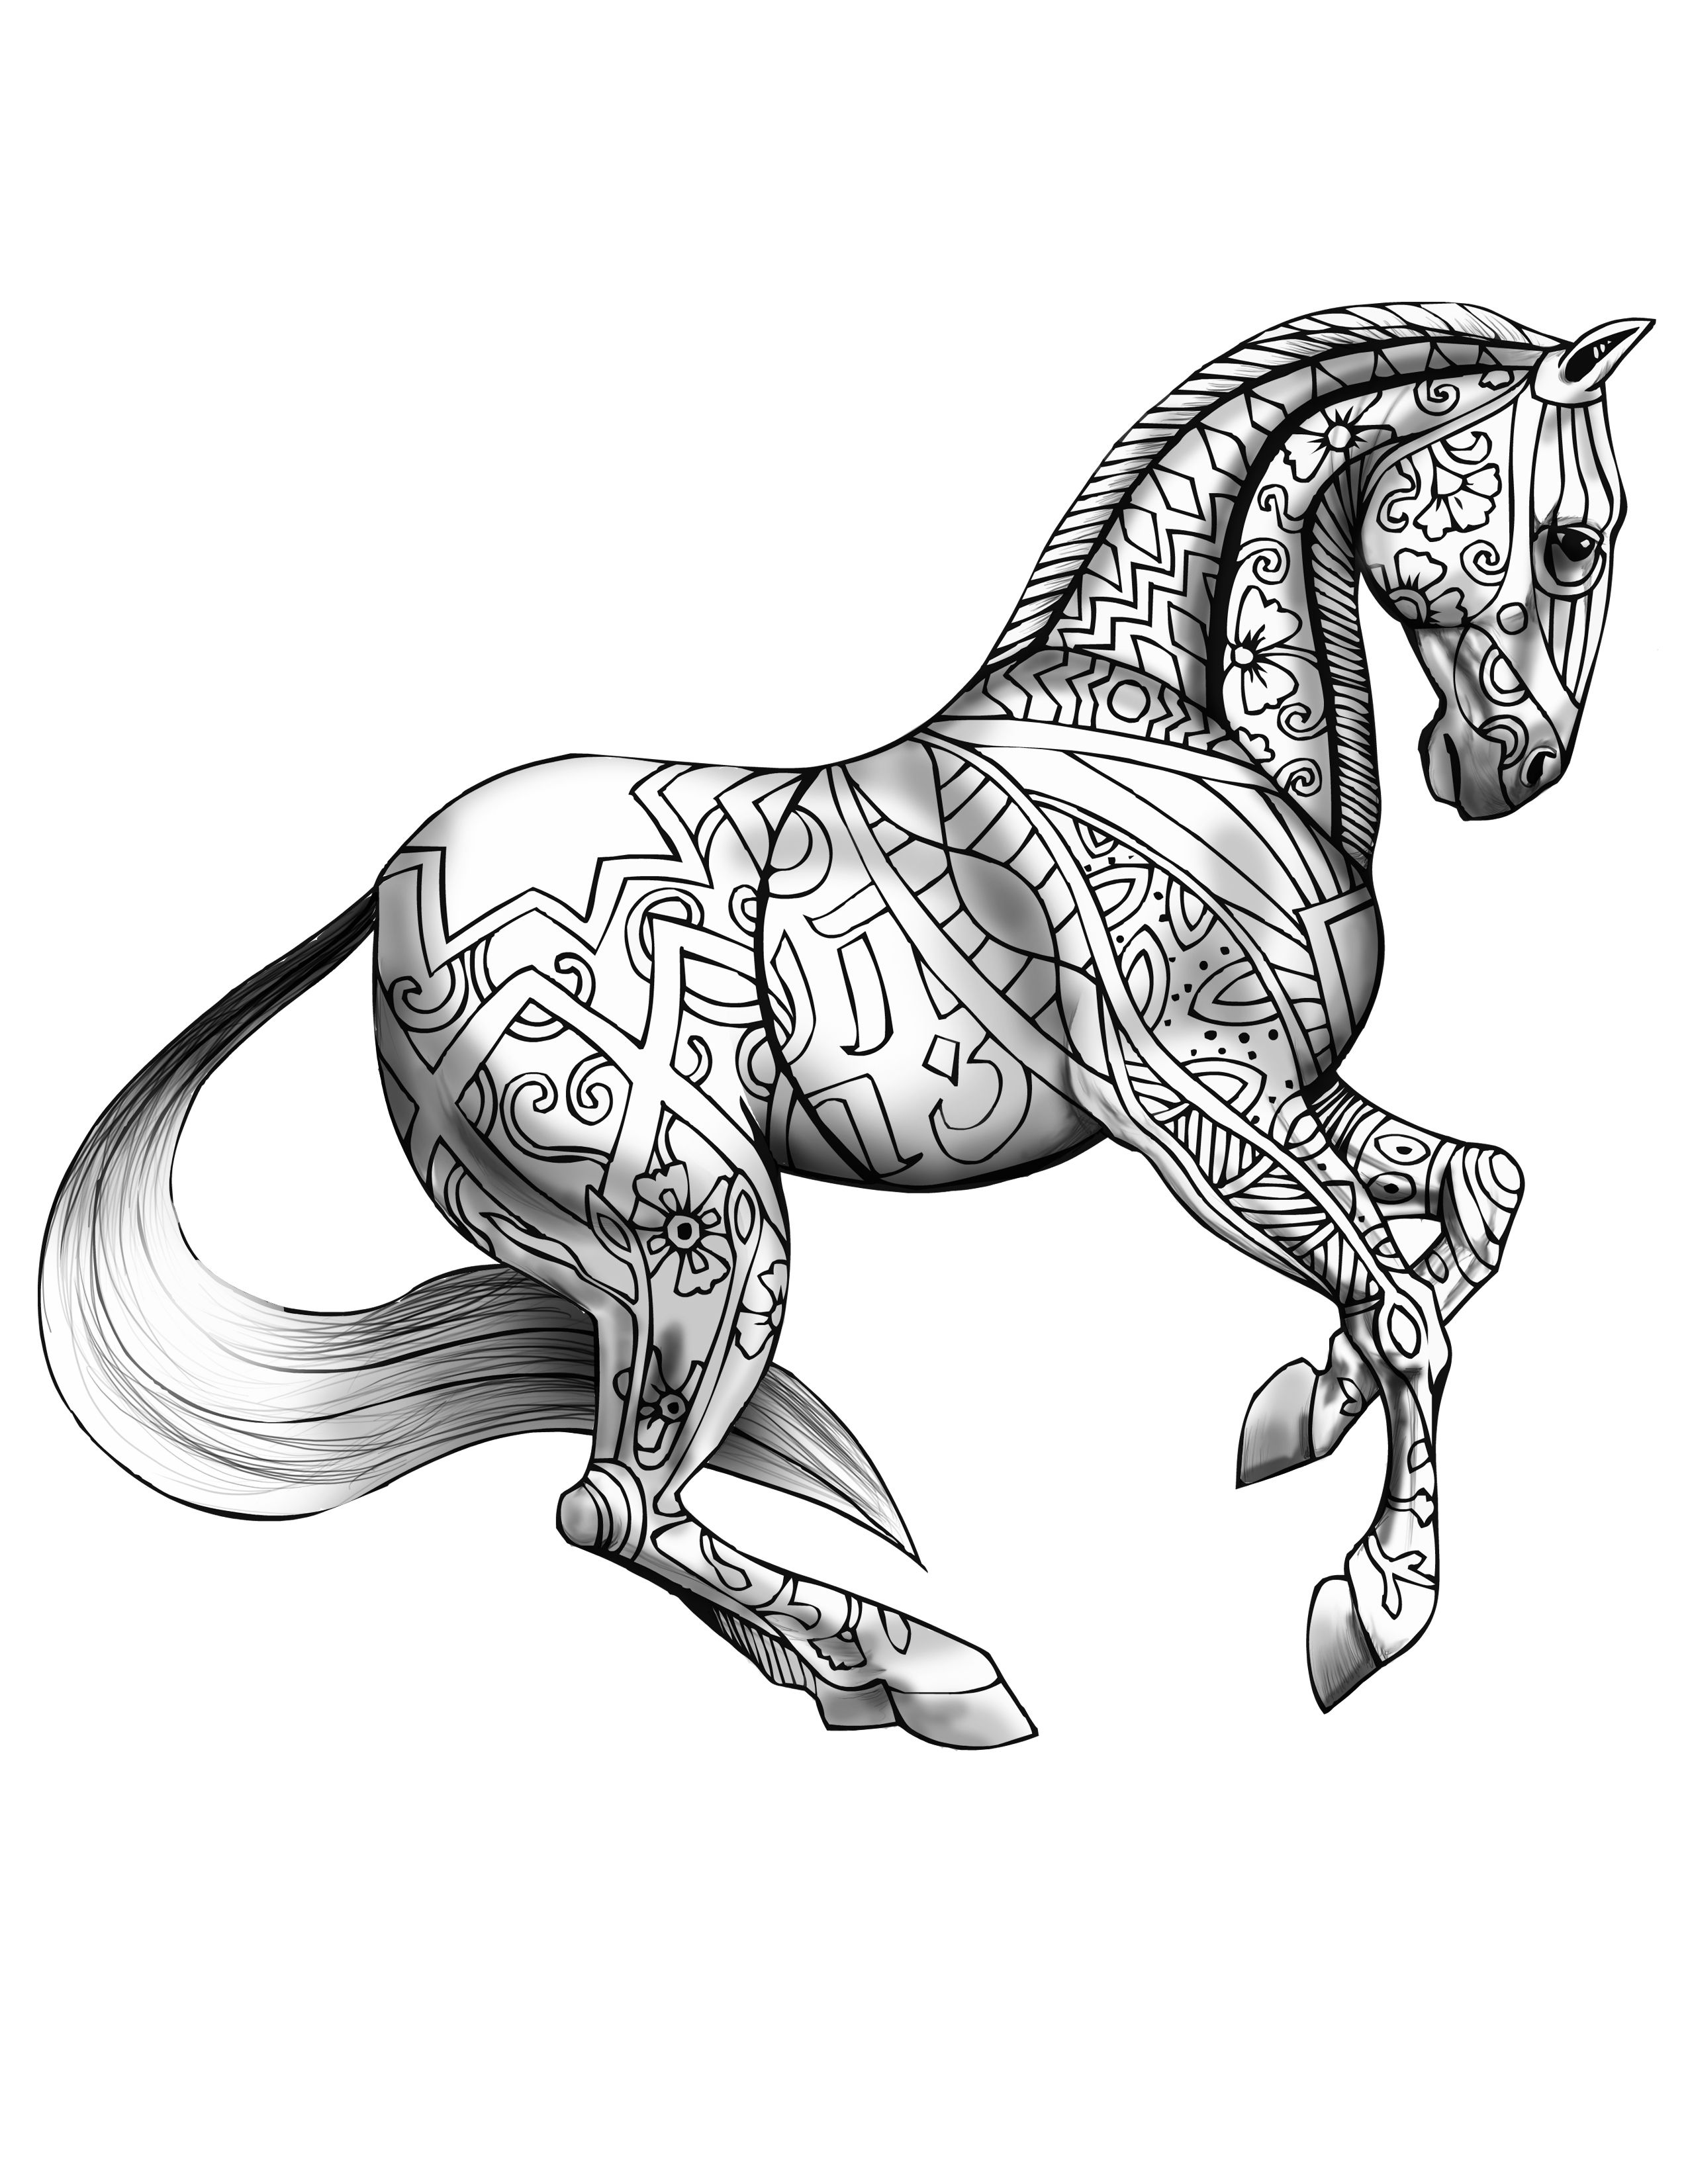 C coloring pages for adults - Download Selah Works Artwork And Adult Coloring Books